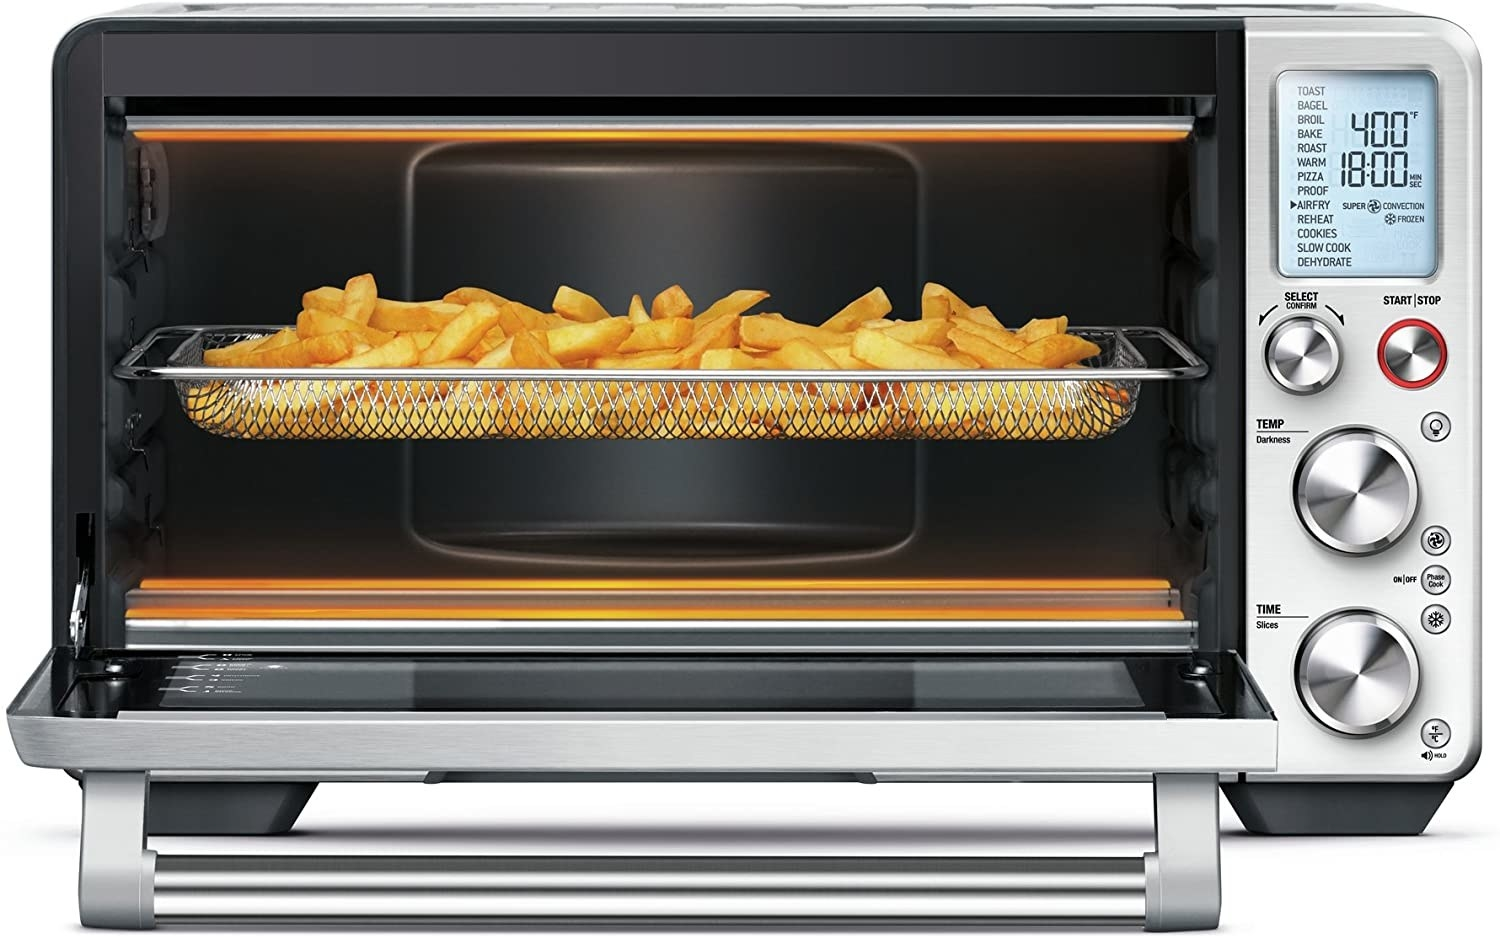 French fries air frying on a rack in the Breville smart oven.